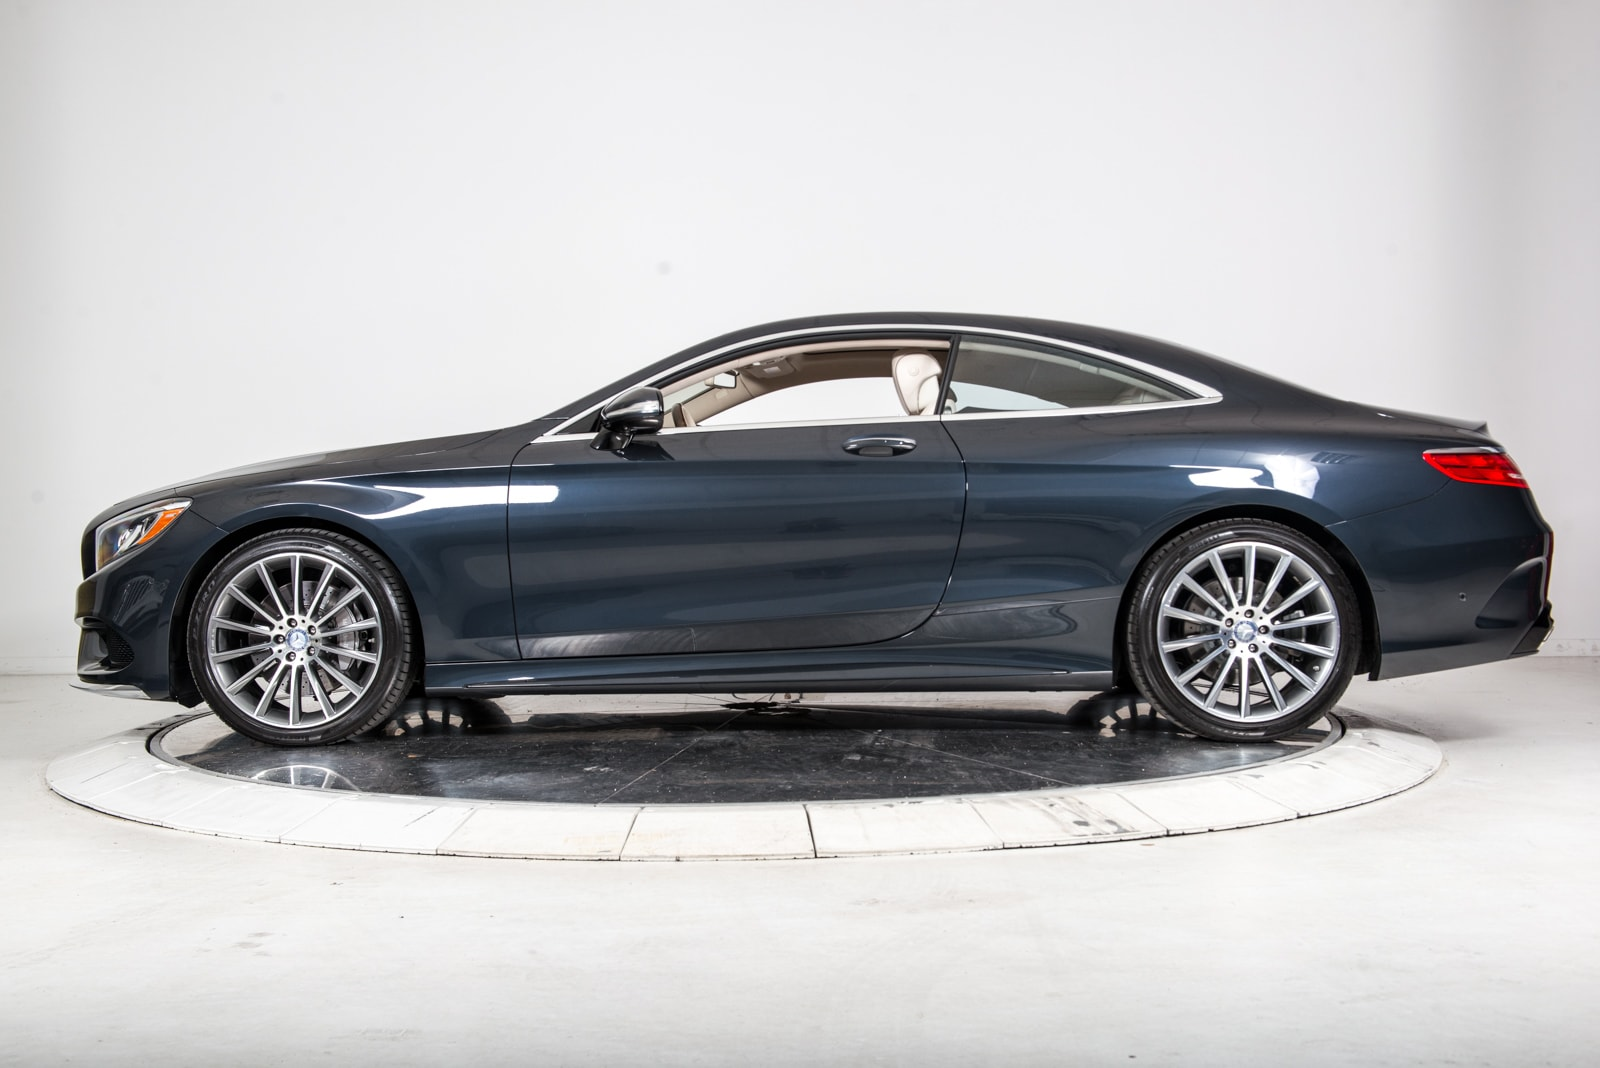 Used 2015 mercedes benz s550 4matic coupe for sale for Used s550 mercedes benz for sale